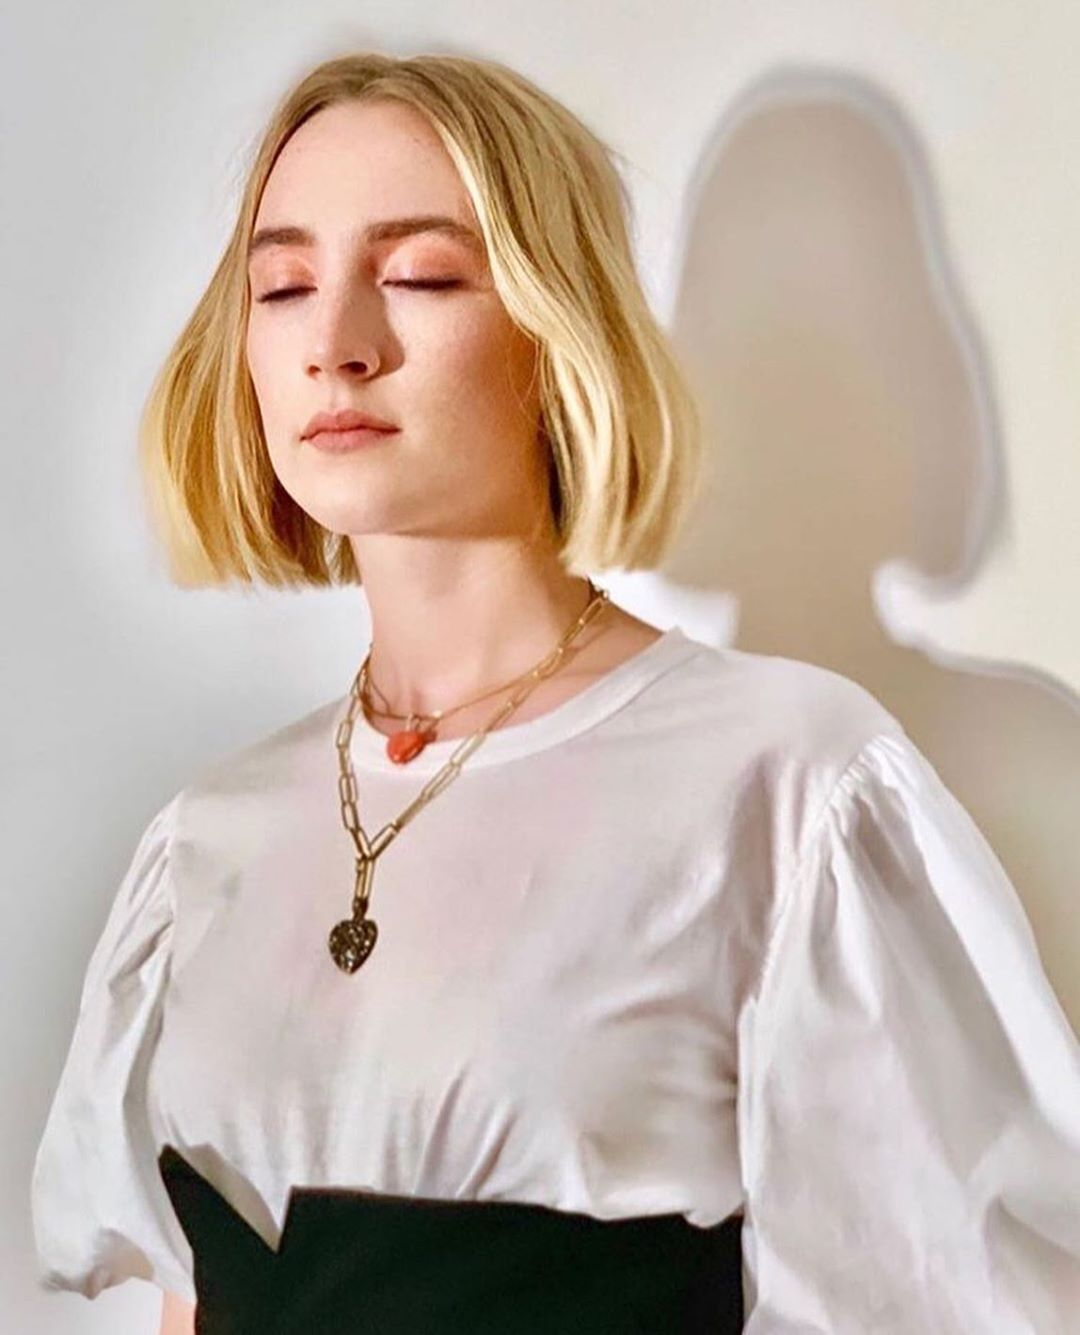 Saoirse Ronan Fanpage On Instagram Other Pictures Of Saoirse Ronan For The Little Women Press Tour In 2020 Short Hair Styles Hair Styles Beauty And The Best